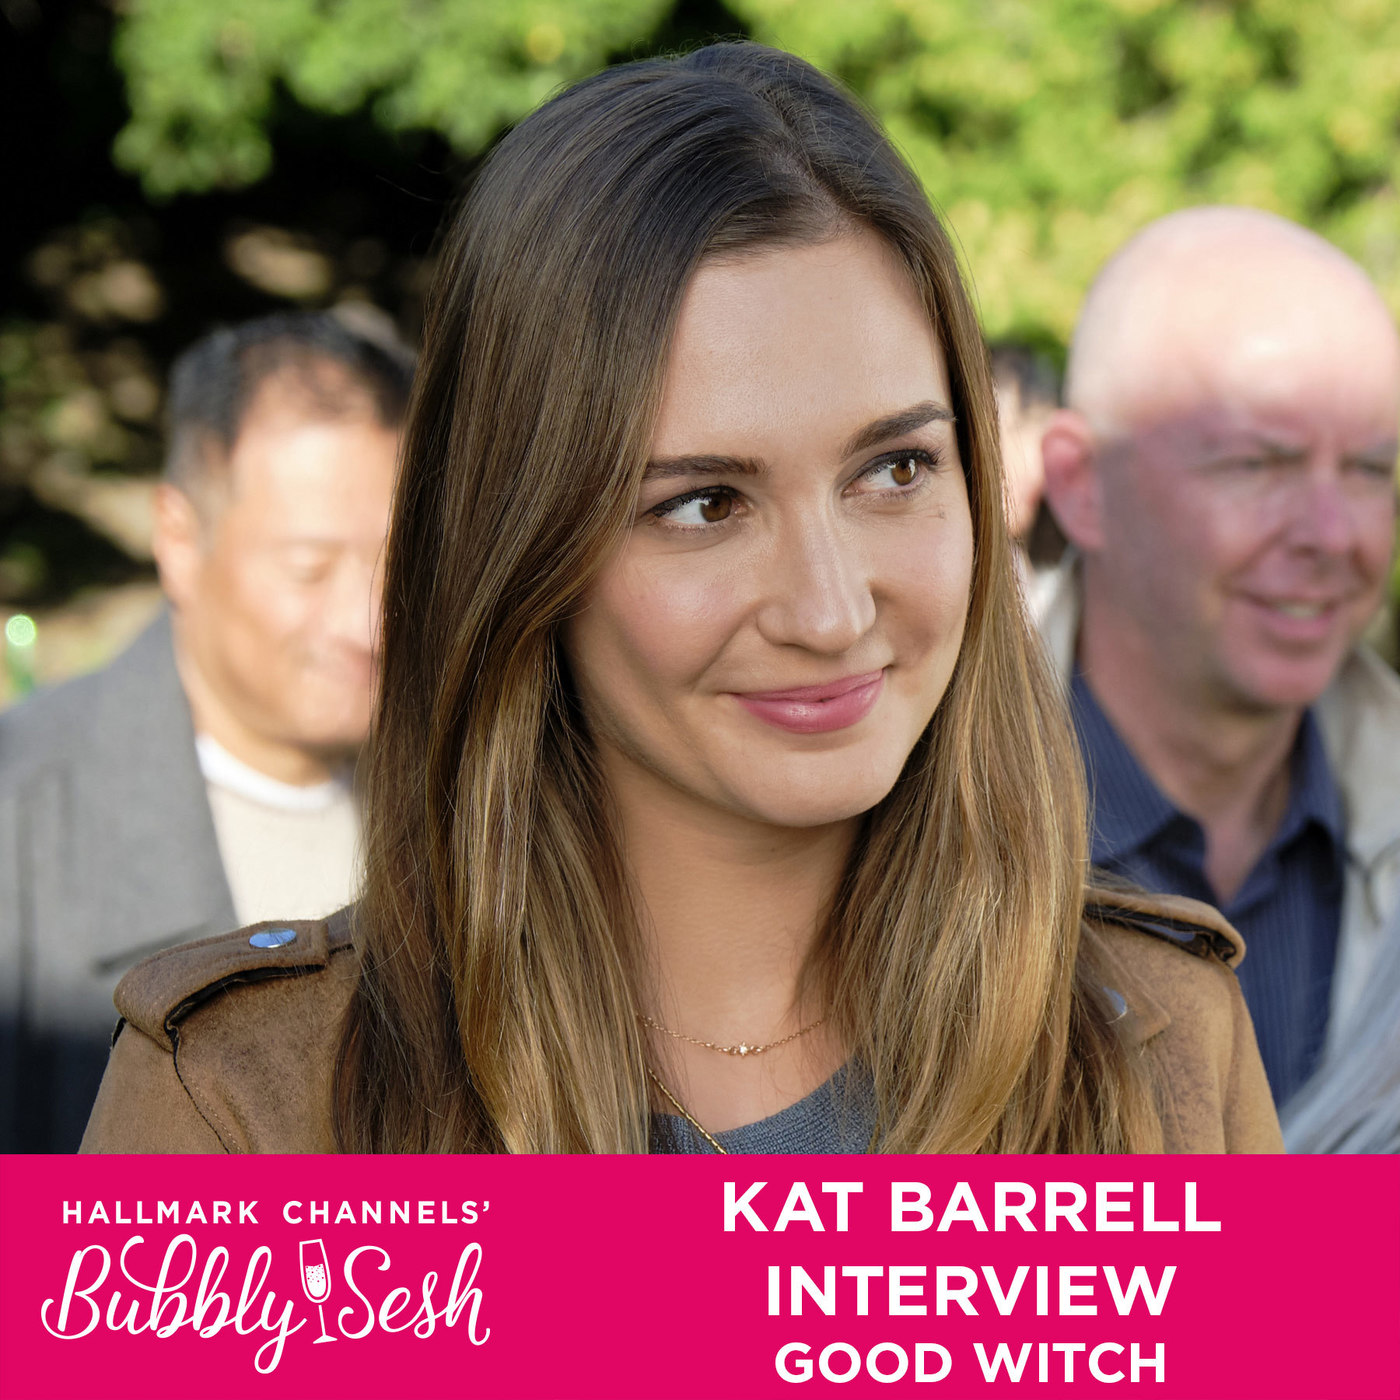 Kat Barrell Interview, Good Witch